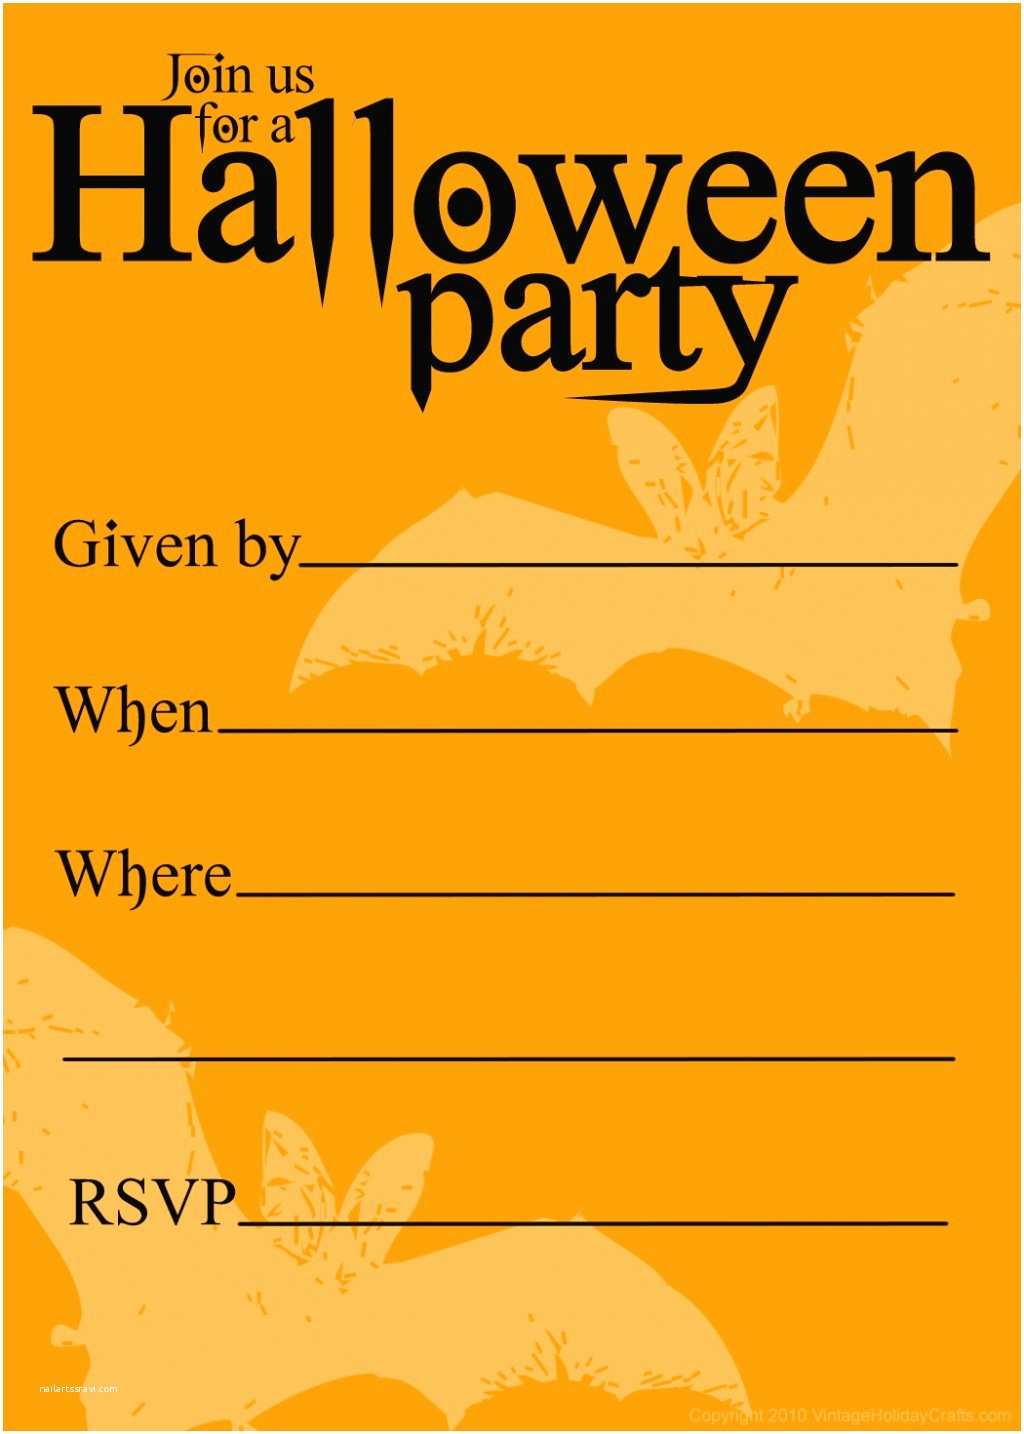 Halloween Party Invitation Template Free Printable Halloween Party Invitations